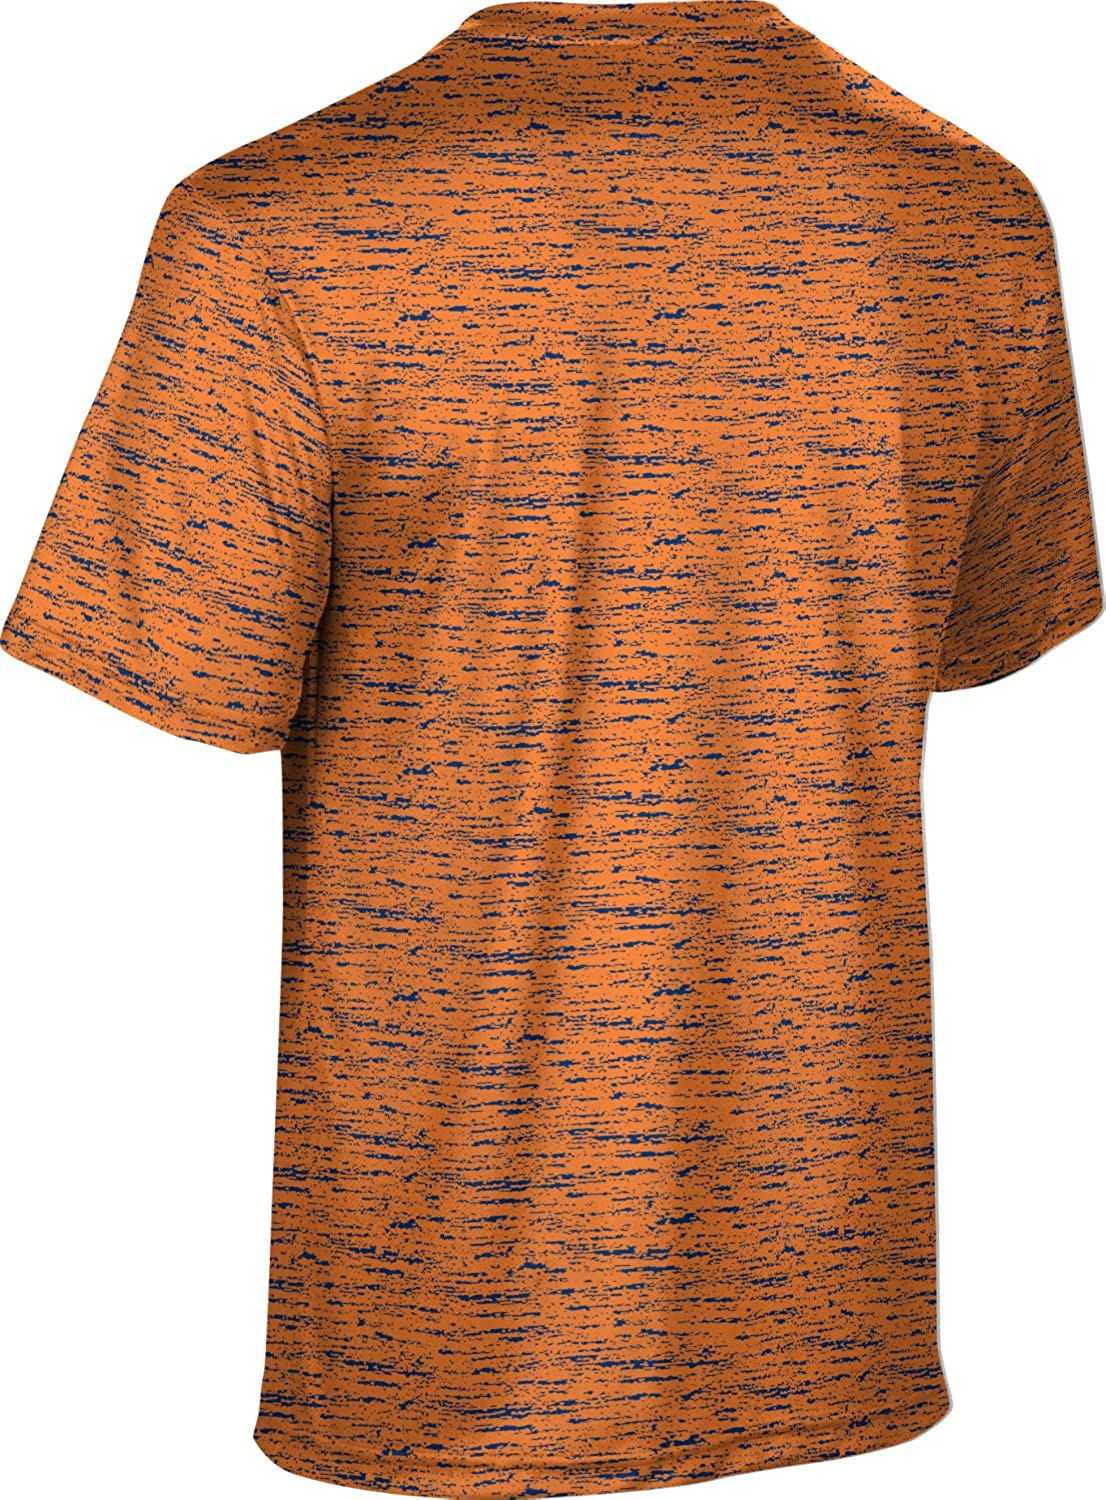 ProSphere Bucknell University Boys Performance T-Shirt Brushed